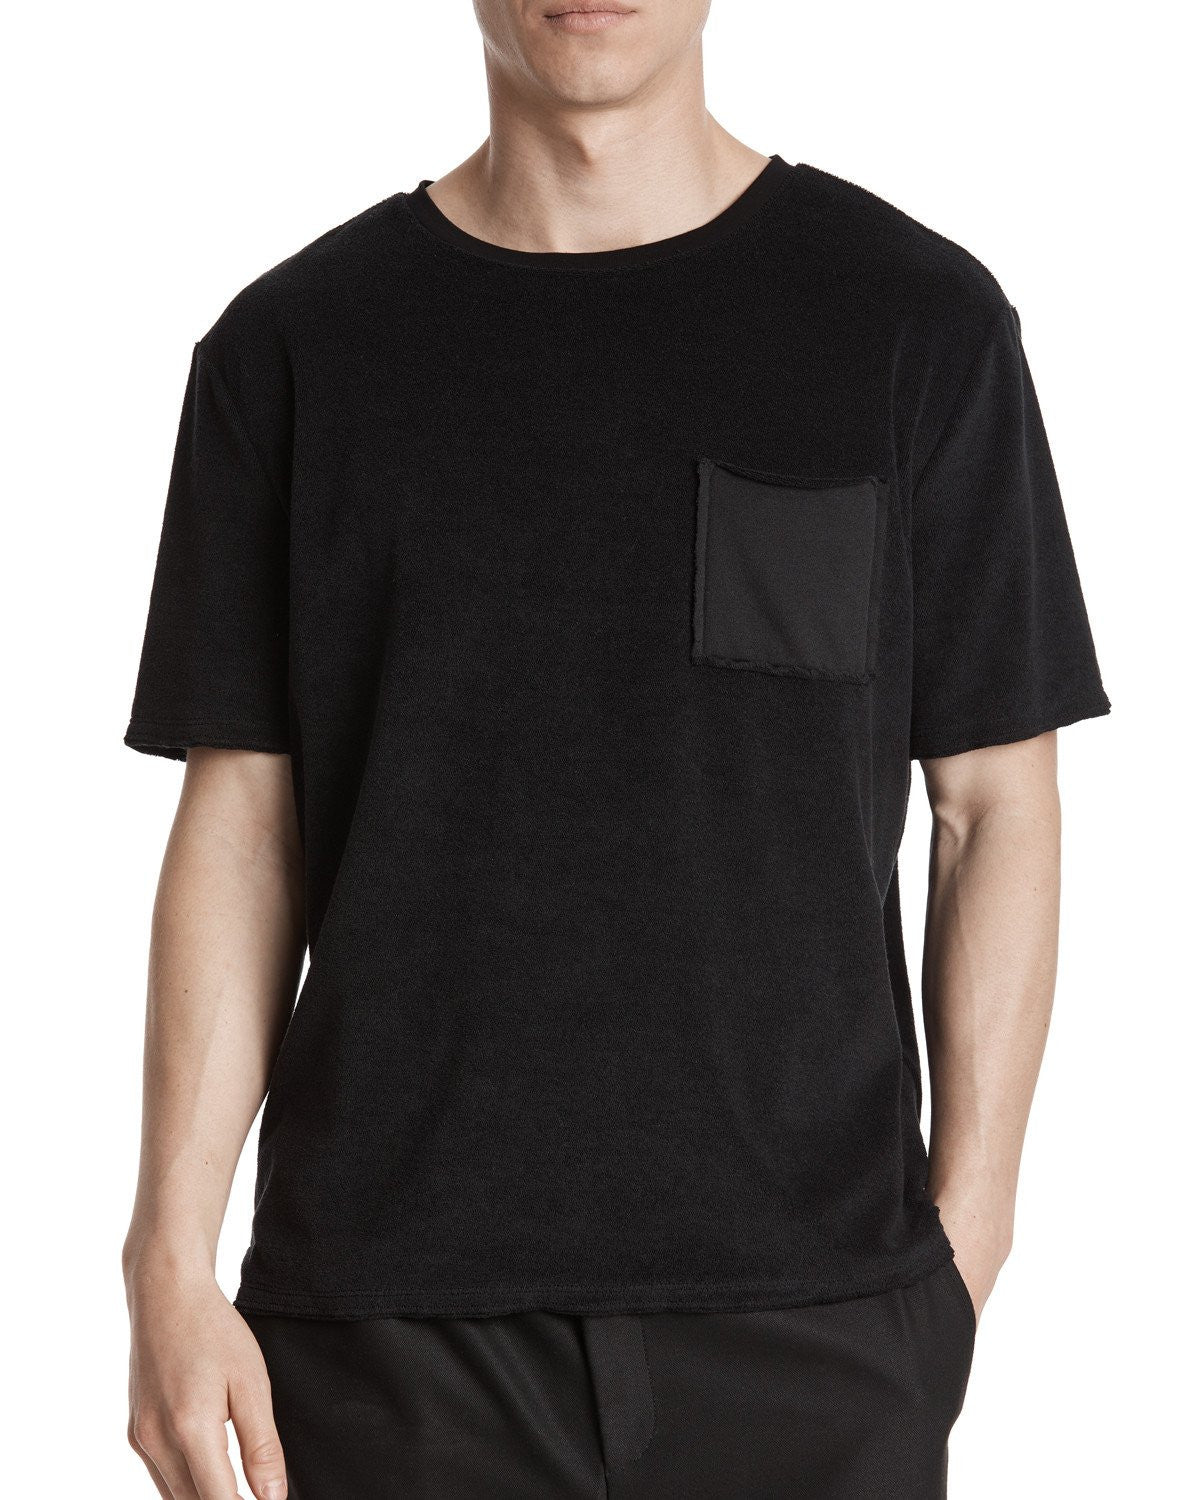 ATM French Terry Relaxed Fit Pocket Tee